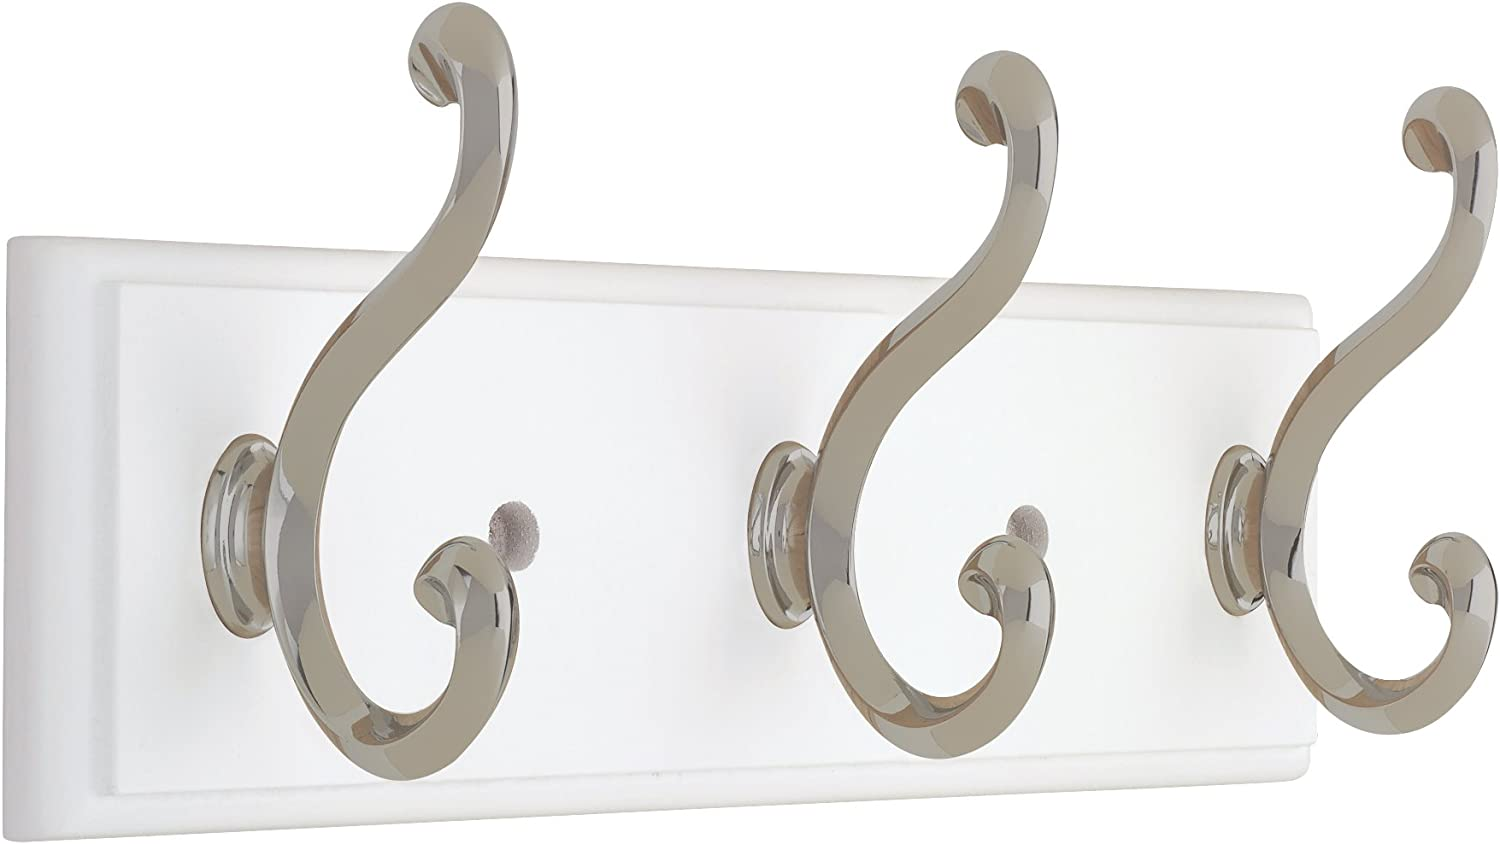 Liberty Hardware 129854 10-Inch Hook Rail/Coat Rack with 3 Scroll Hooks, White and Satin Nickel